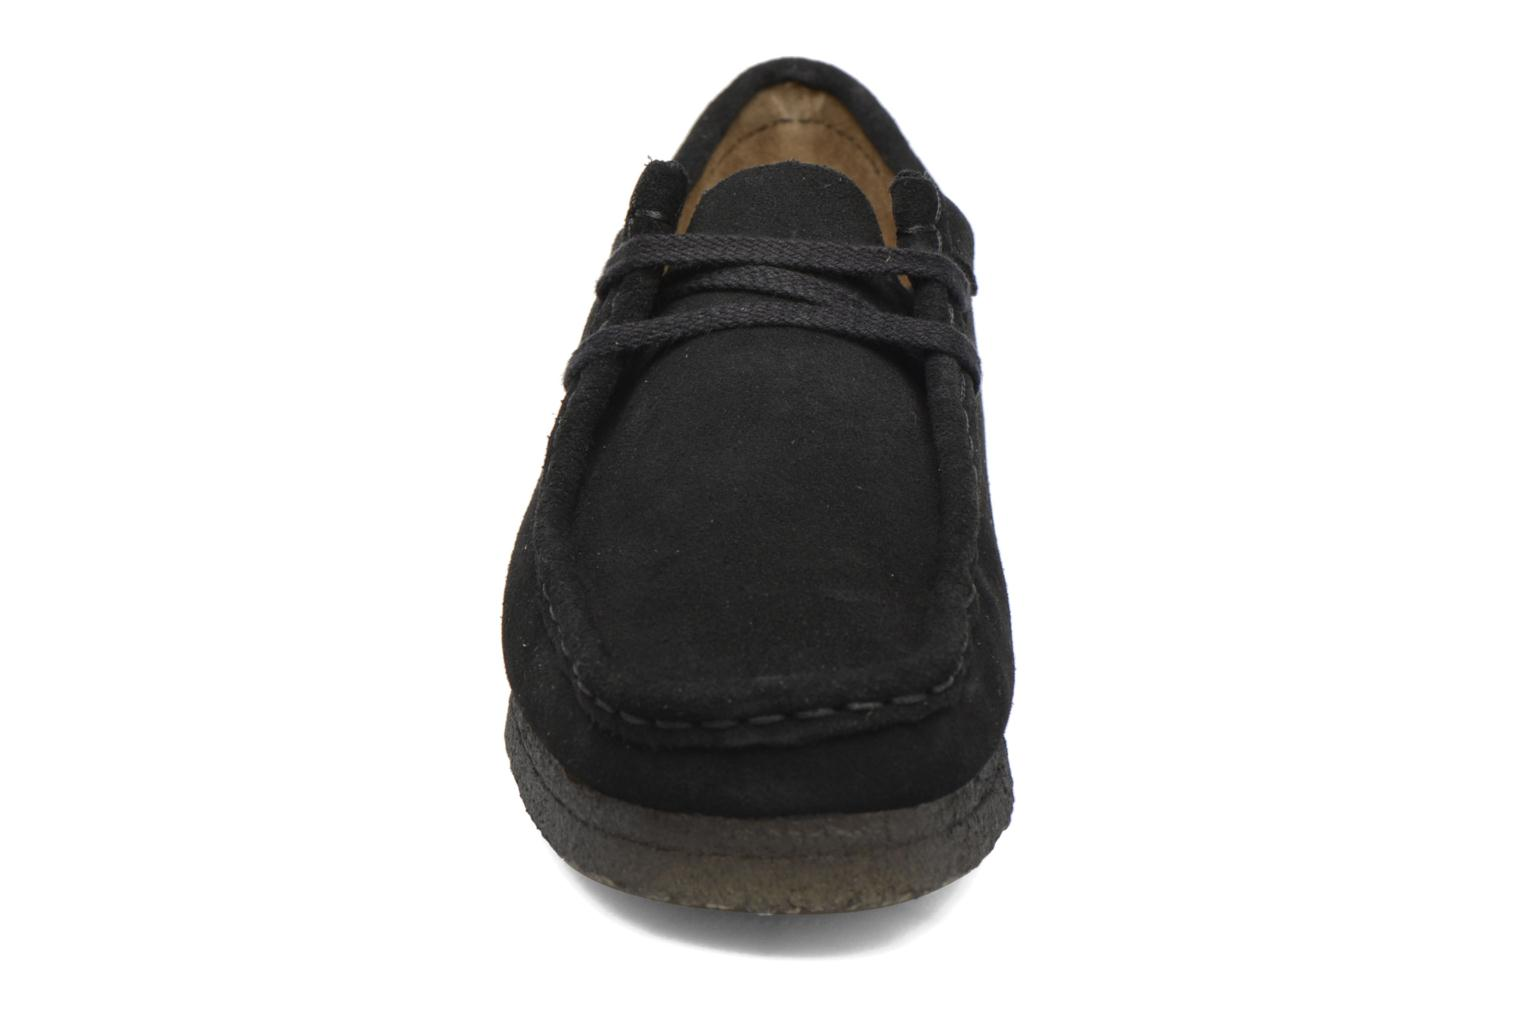 Lace-up shoes Clarks Originals Wallabee W Black model view